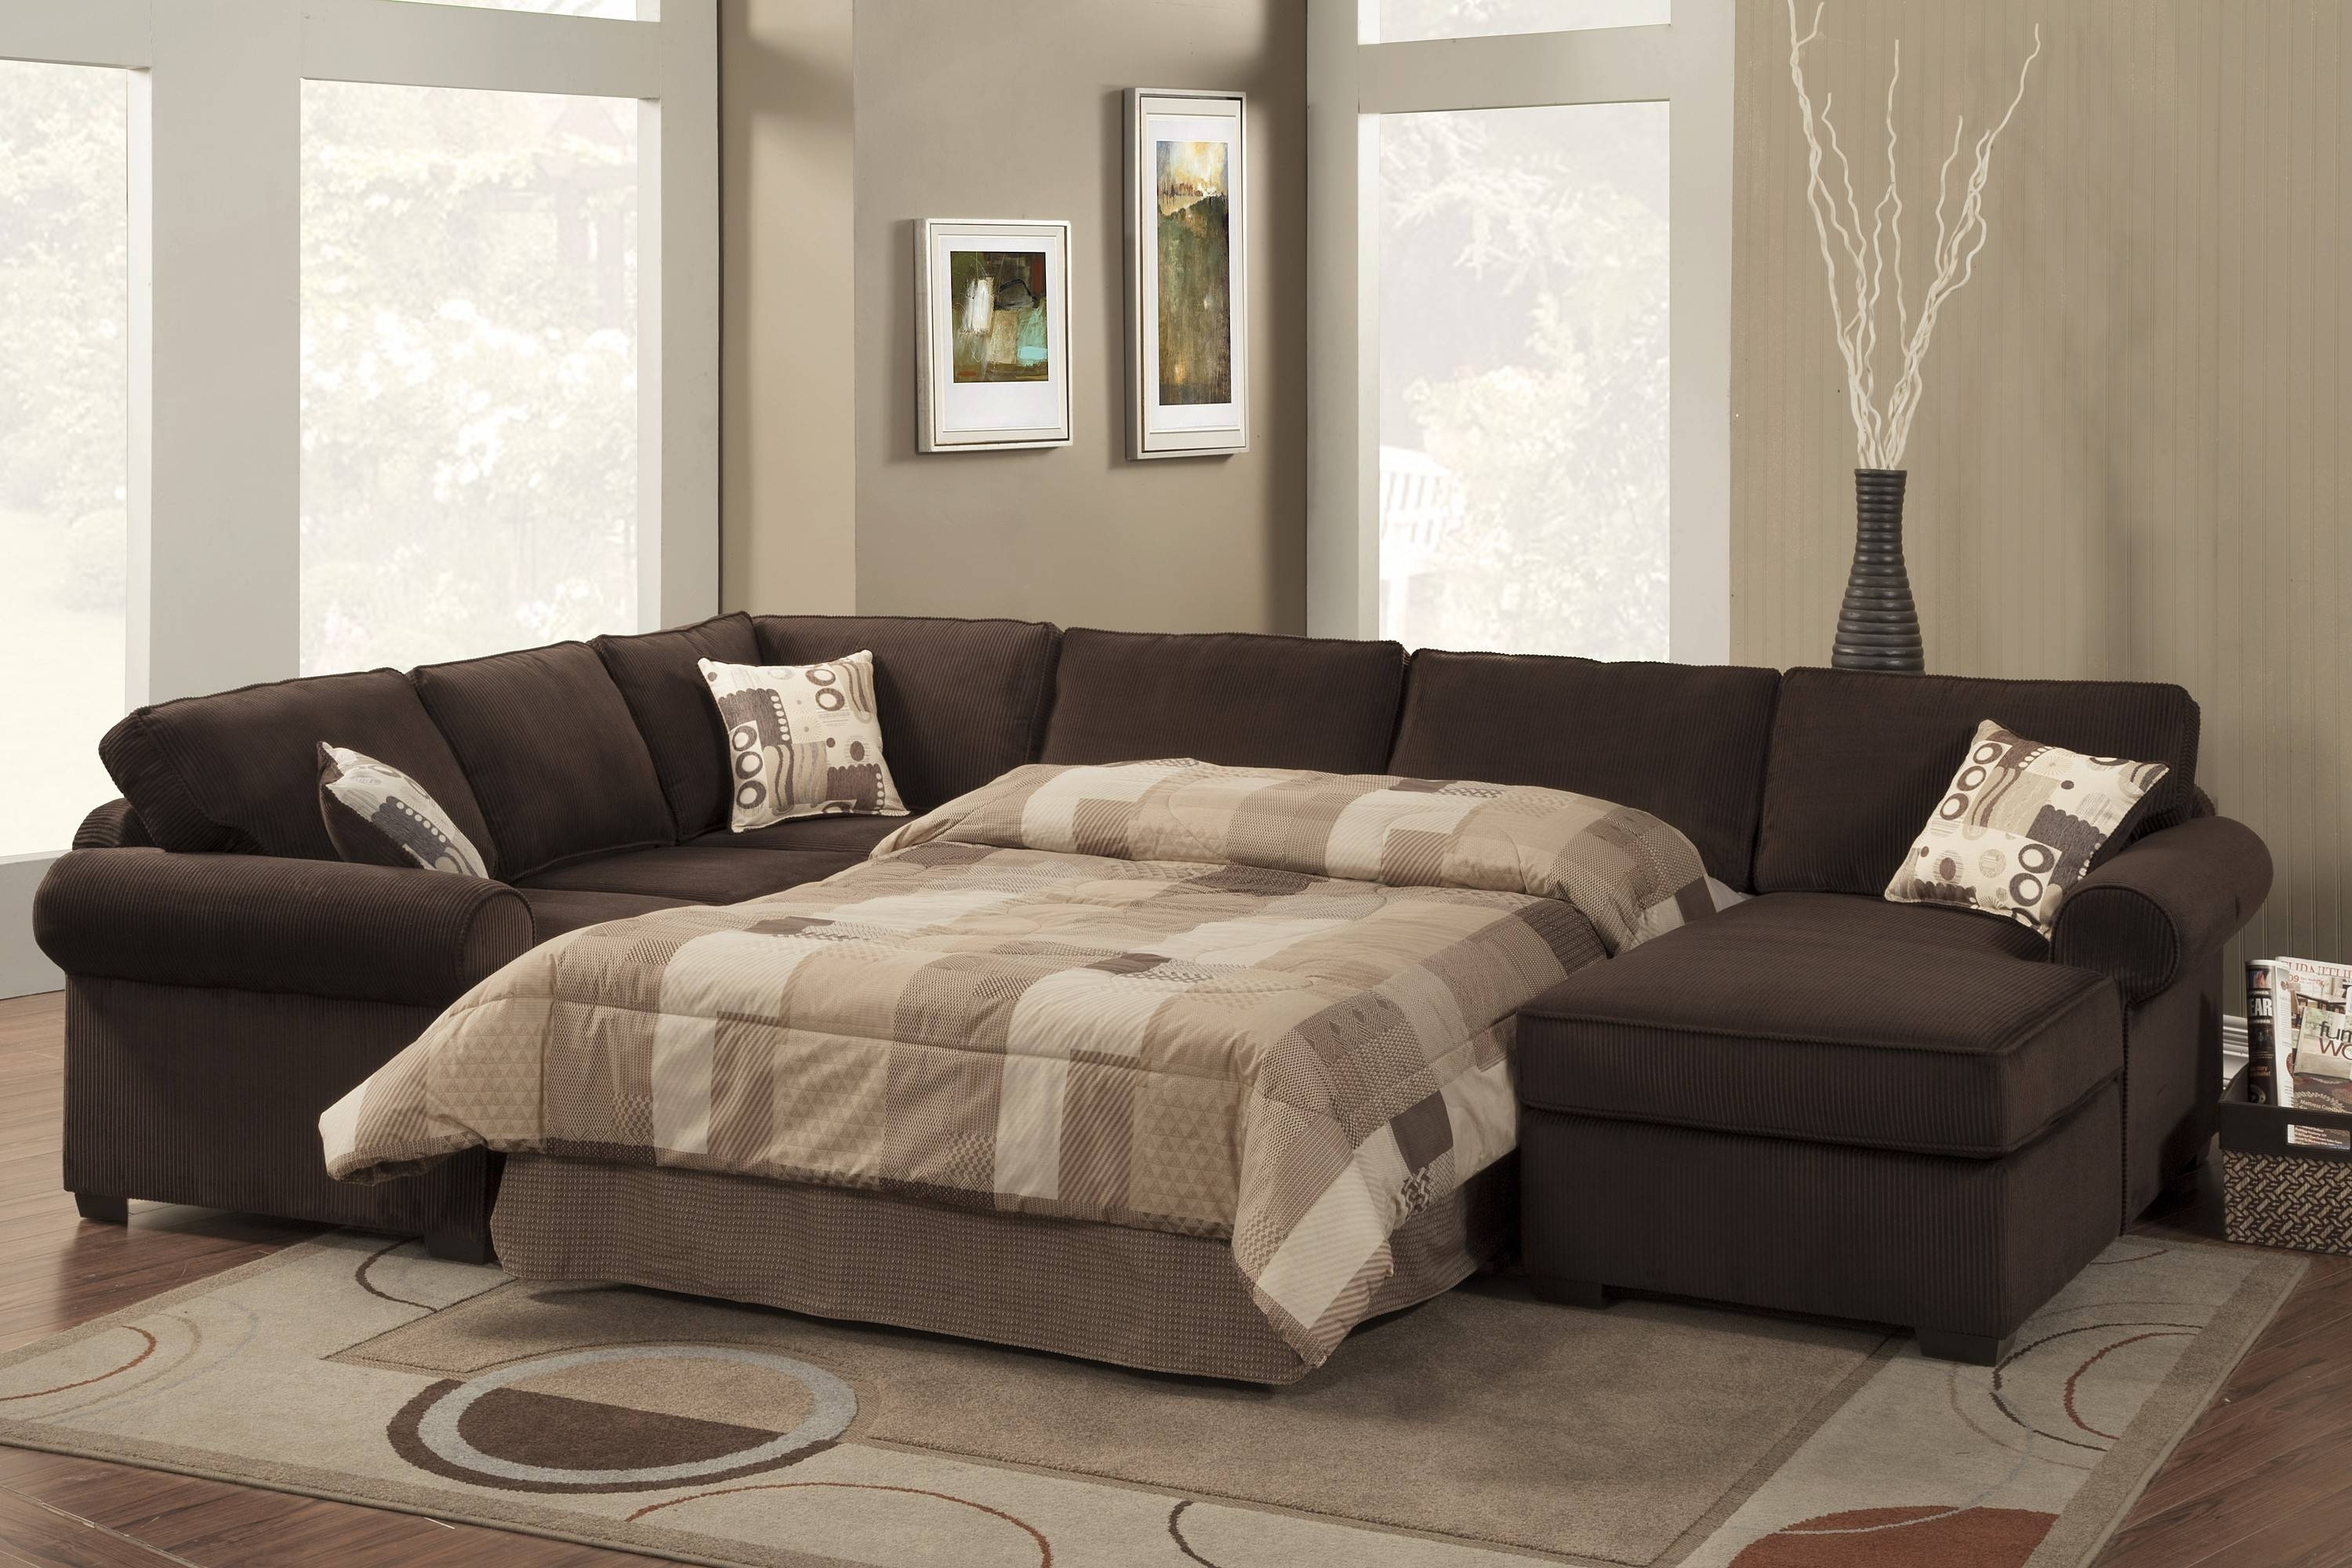 Cheap Sectional Sofas With Wide Sectional Couch With New Sectional Pertaining To Sectional Sofas (View 1 of 10)